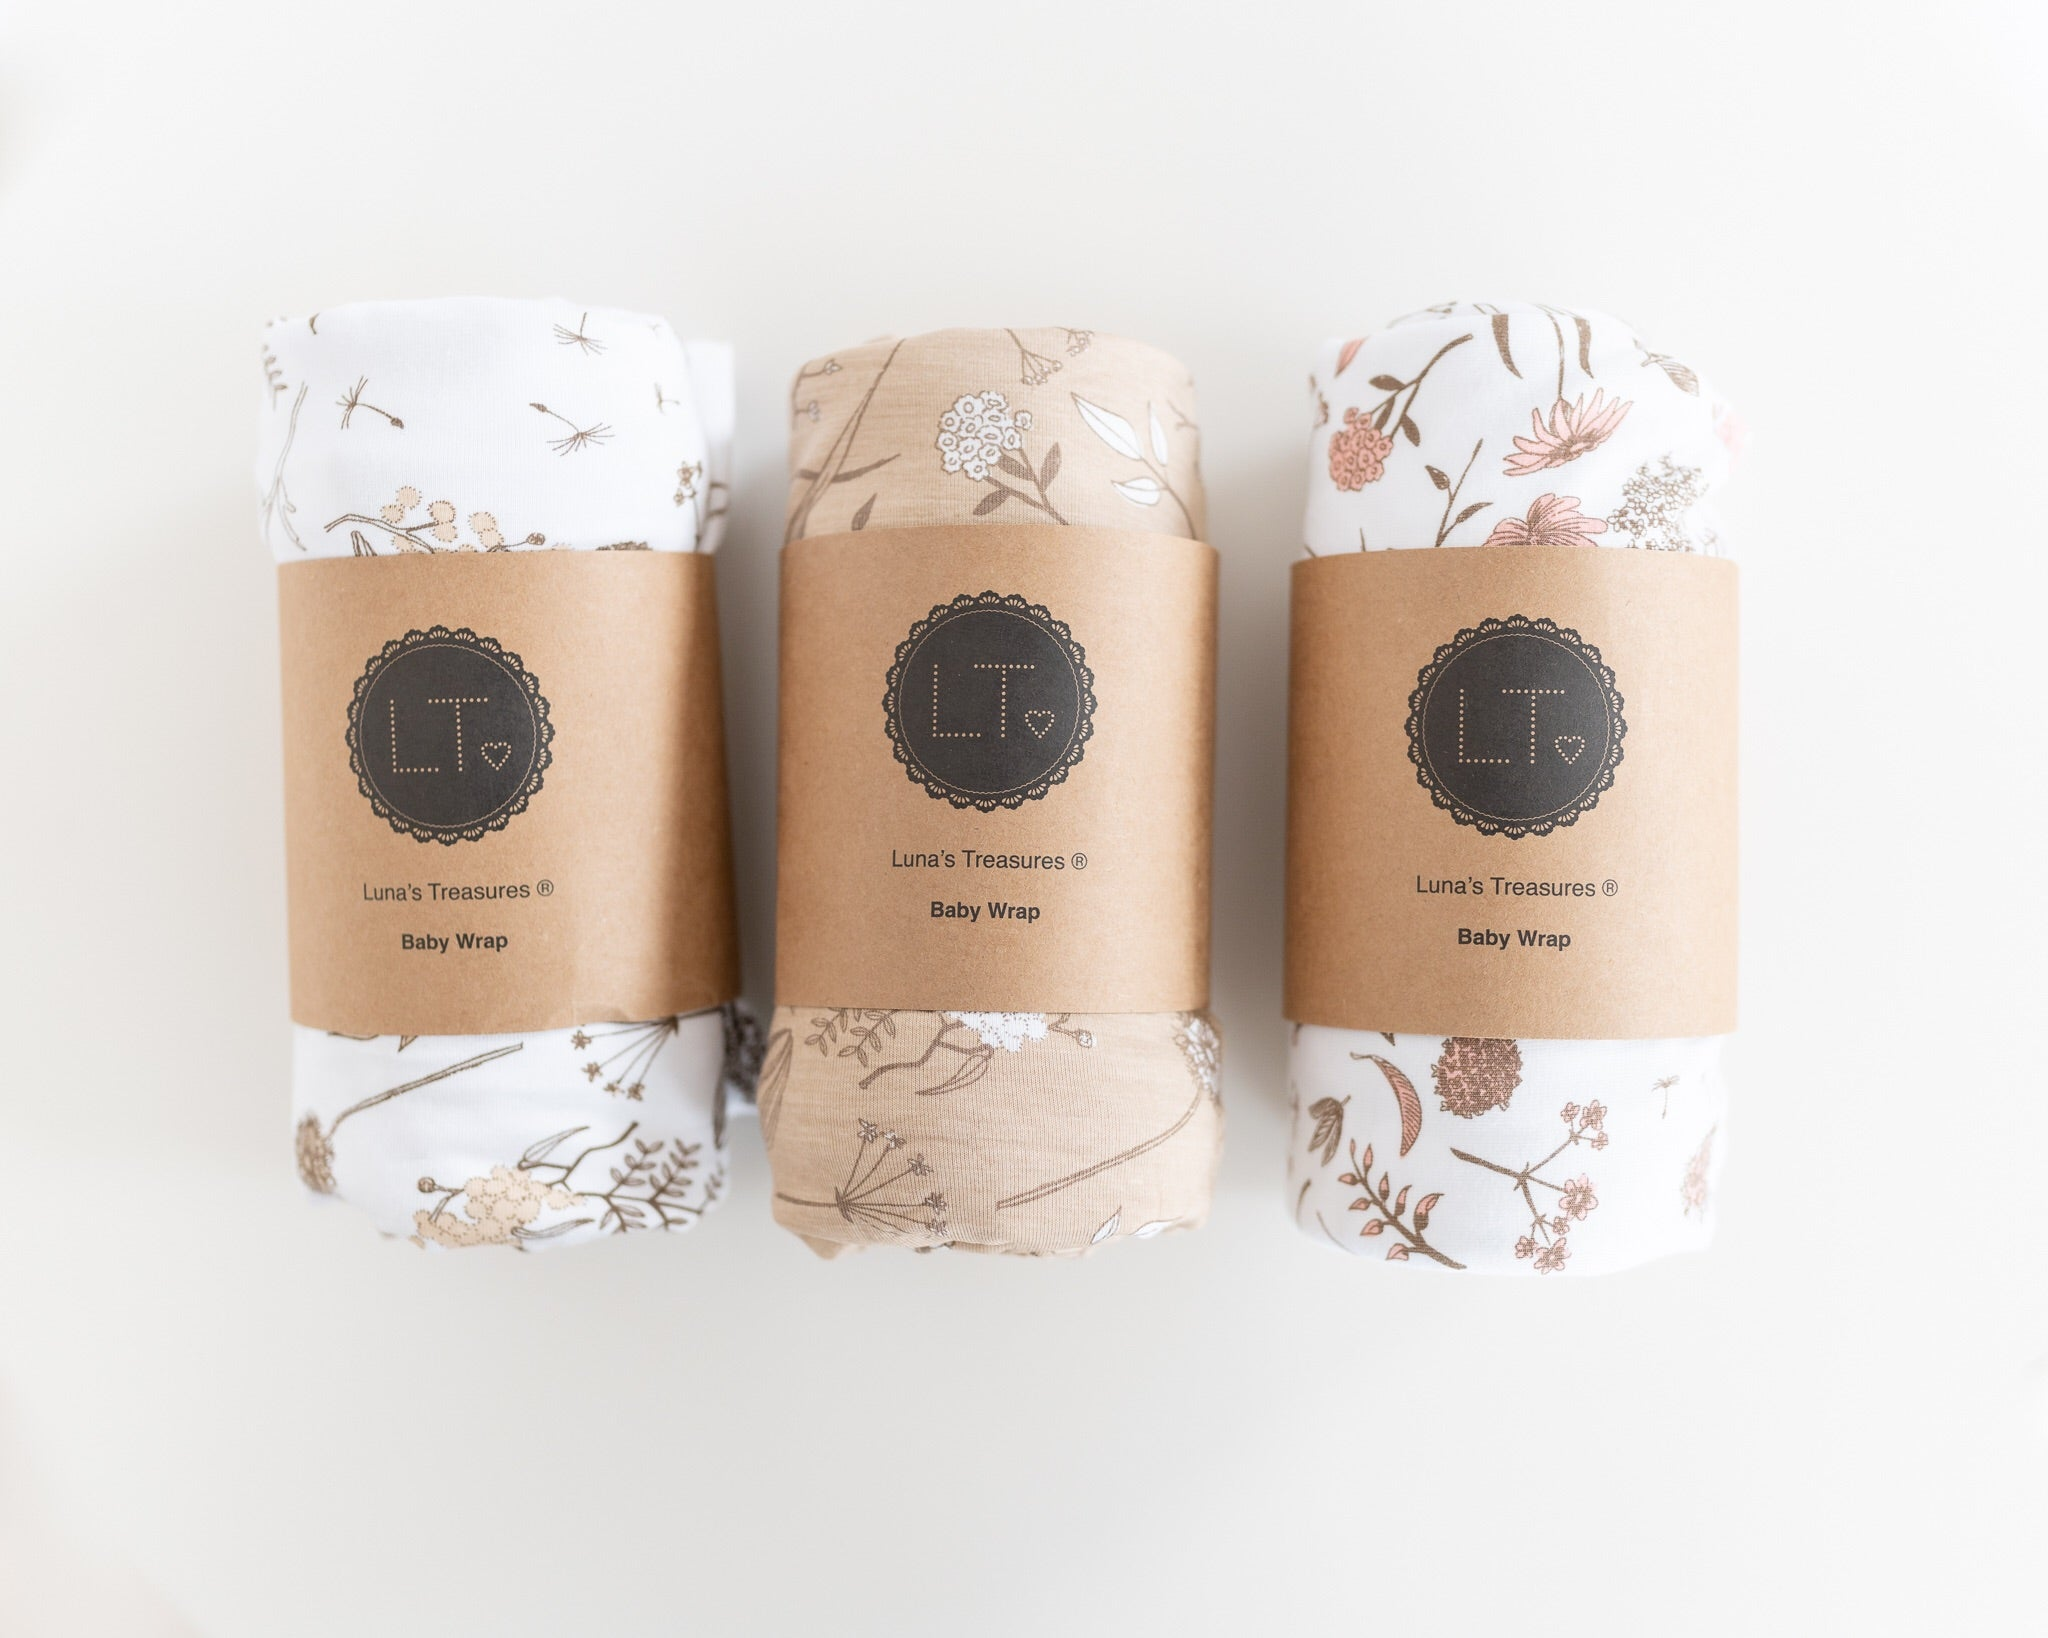 Wild meadow (neutral base with white petals) bamboo JERSEY swaddle wrap - lunastreasures